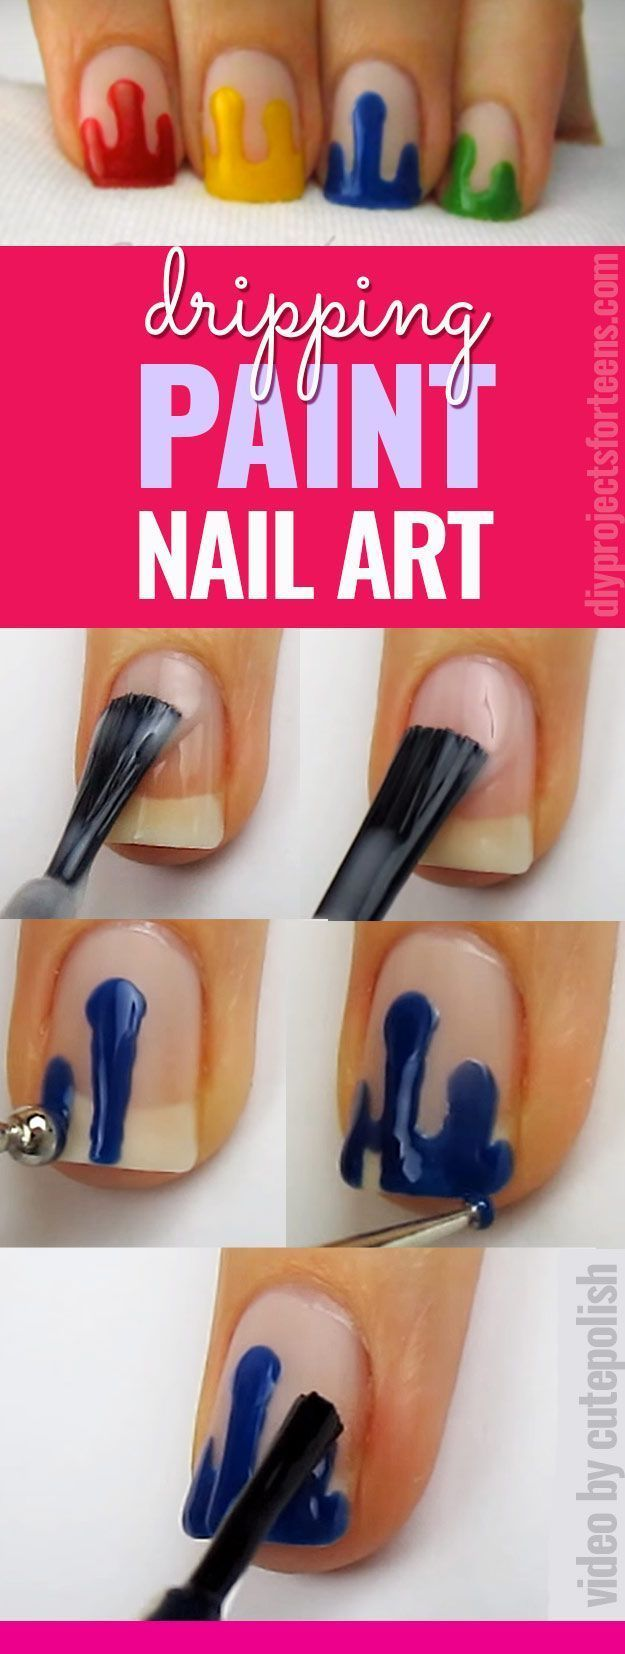 Cool Nail Art Ideas - Dripping Paint Nail Polish - Fun for Teens and Tweens